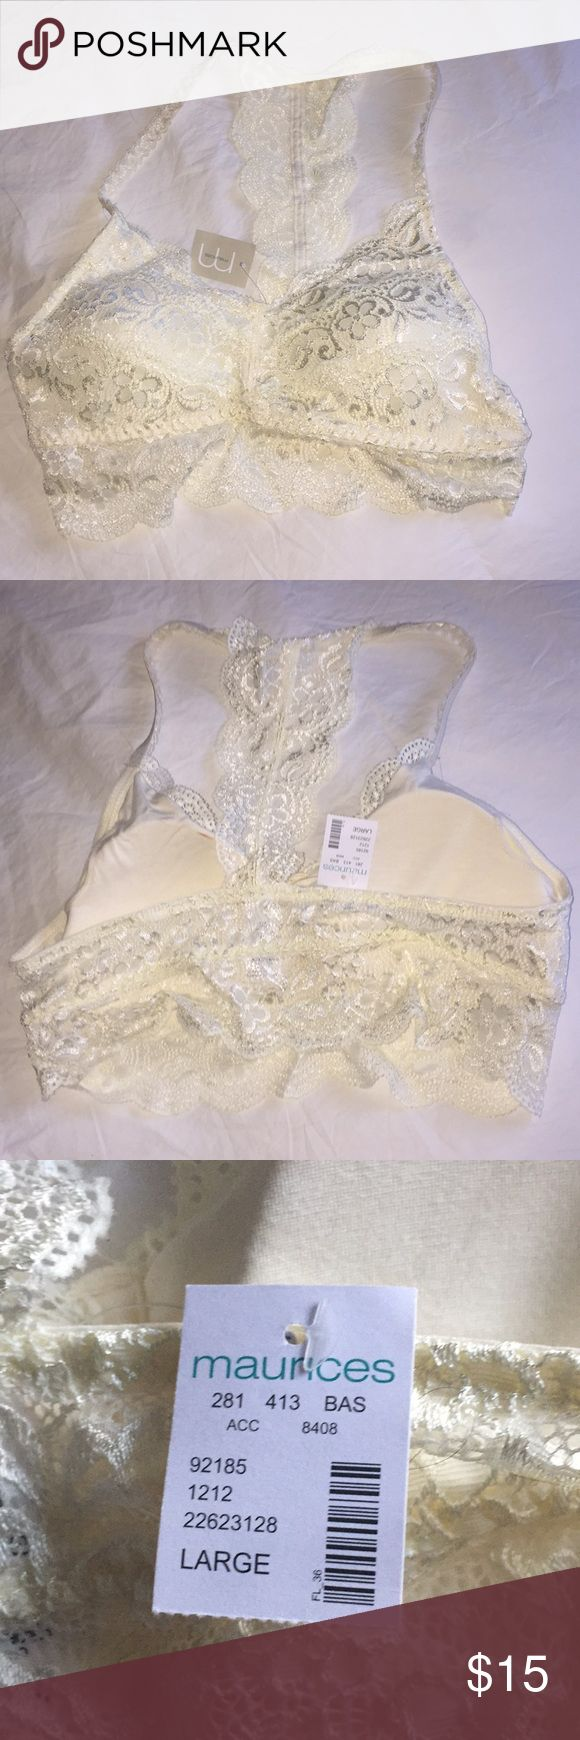 NWT Maurice's lace racer back bra Ivory lace size large bra from Maurice's. Maurices Intimates & Sleepwear Bras